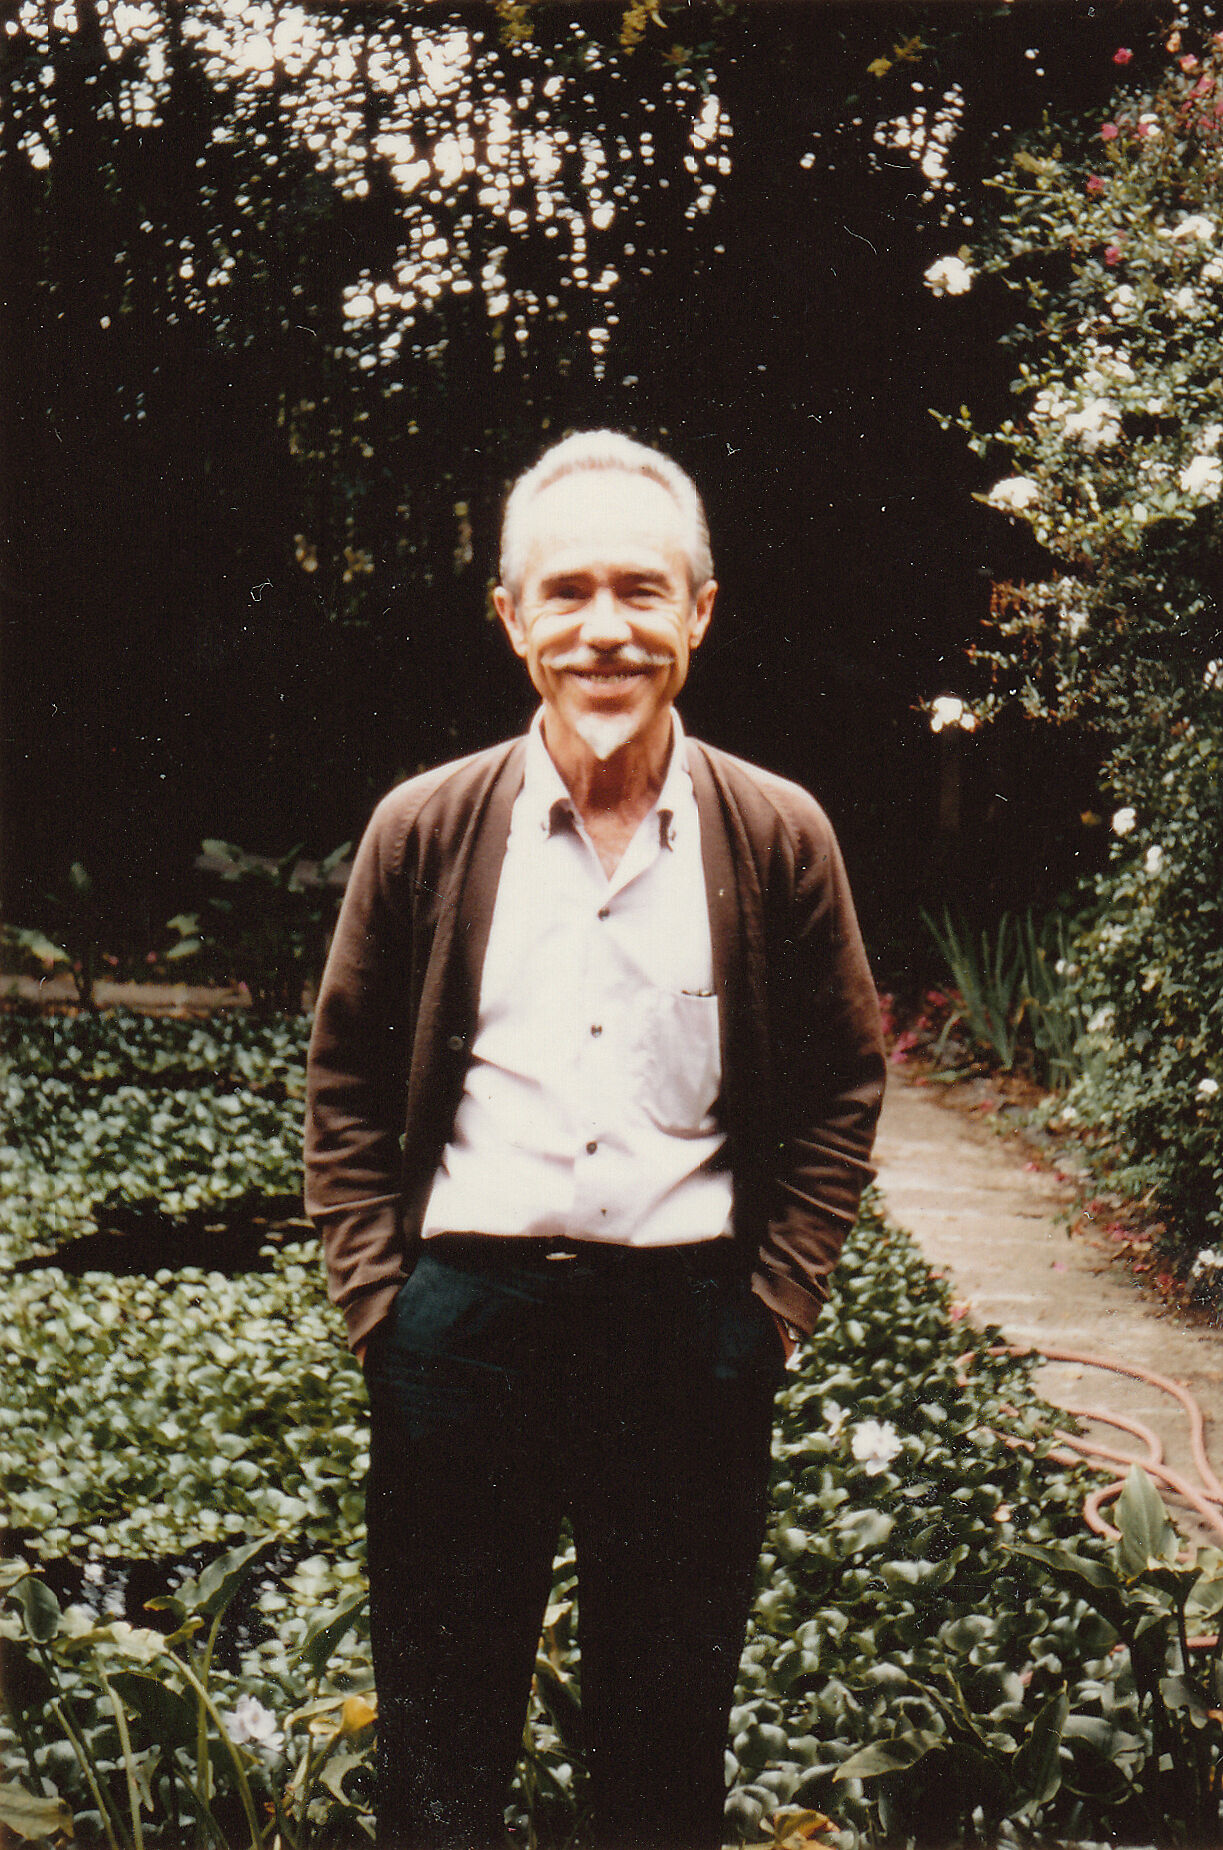 The composer Conlon Nancarrow wearing a sweater in his garden.